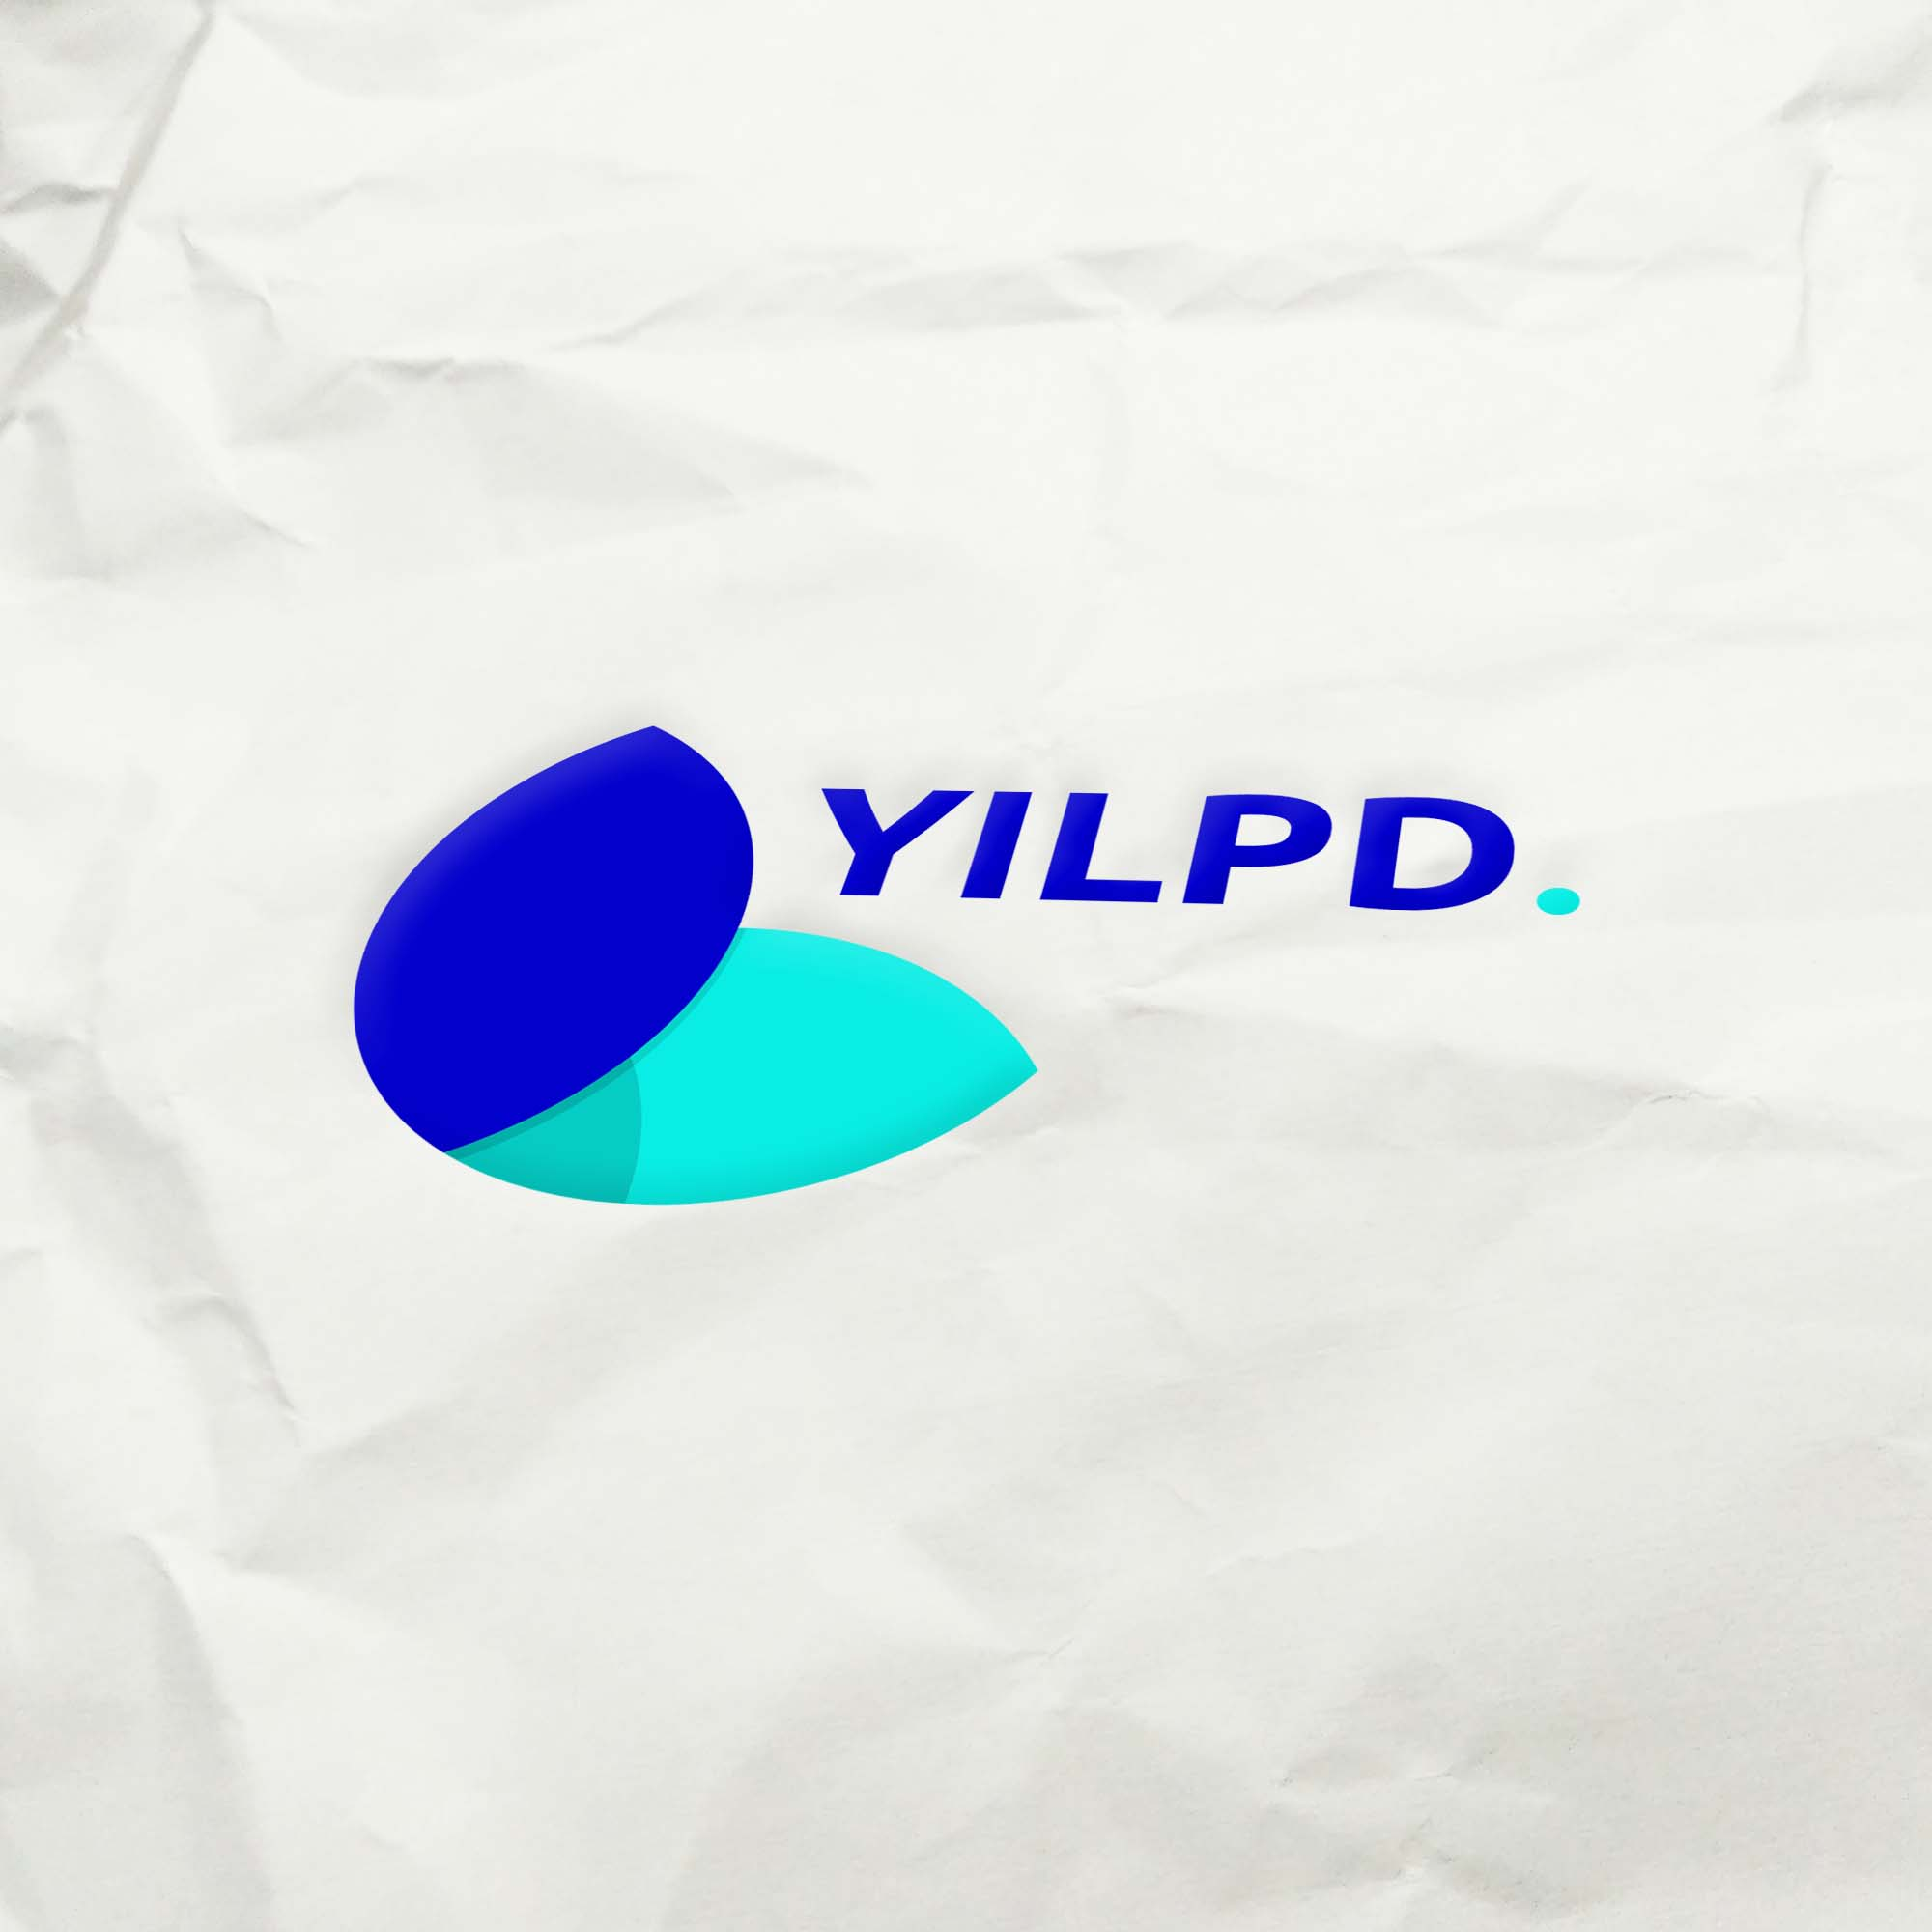 business logo design free download for commercial use wisxi com